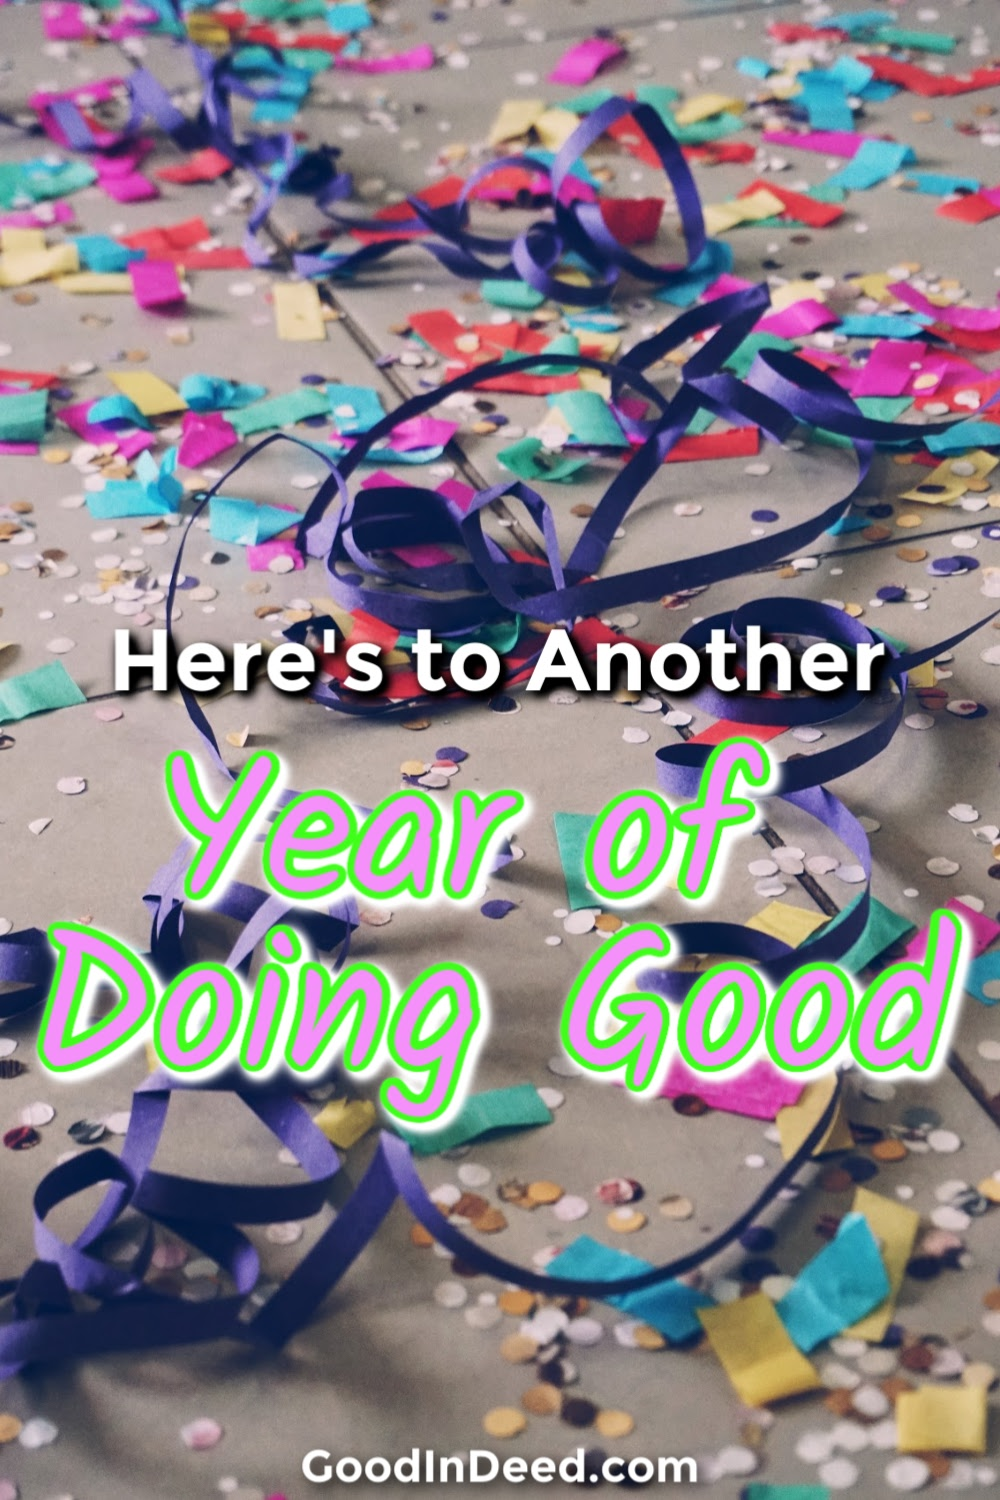 We have another year of doing good done and in the past and as we march forward into a new year at Good In Deed we want to thank you.